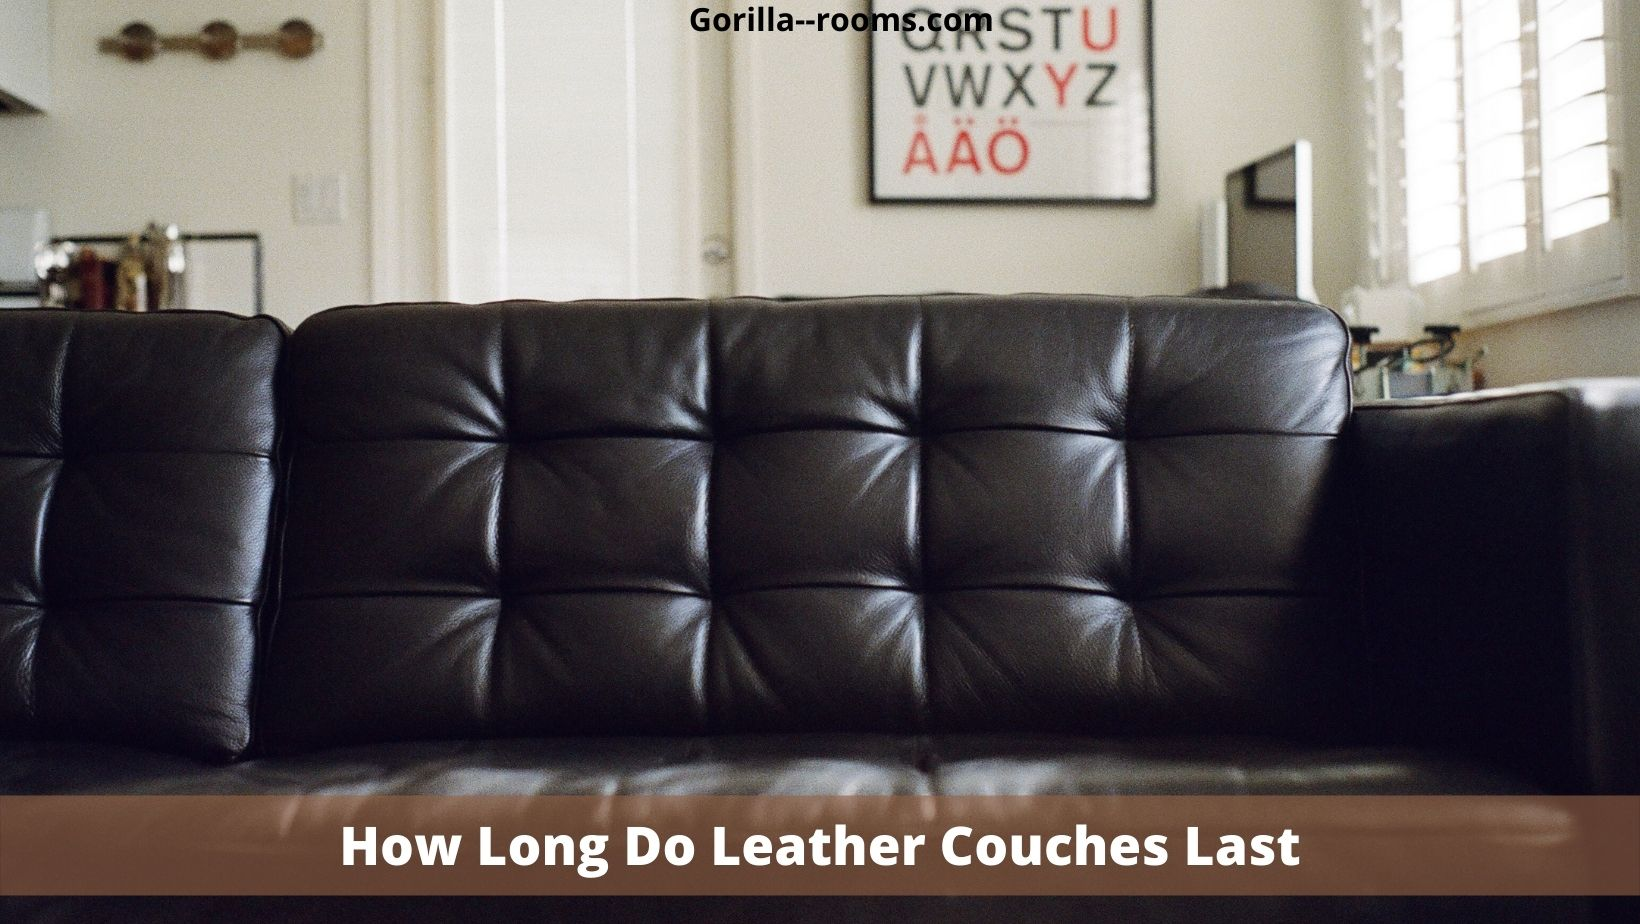 How Long Do Leather Couches Last